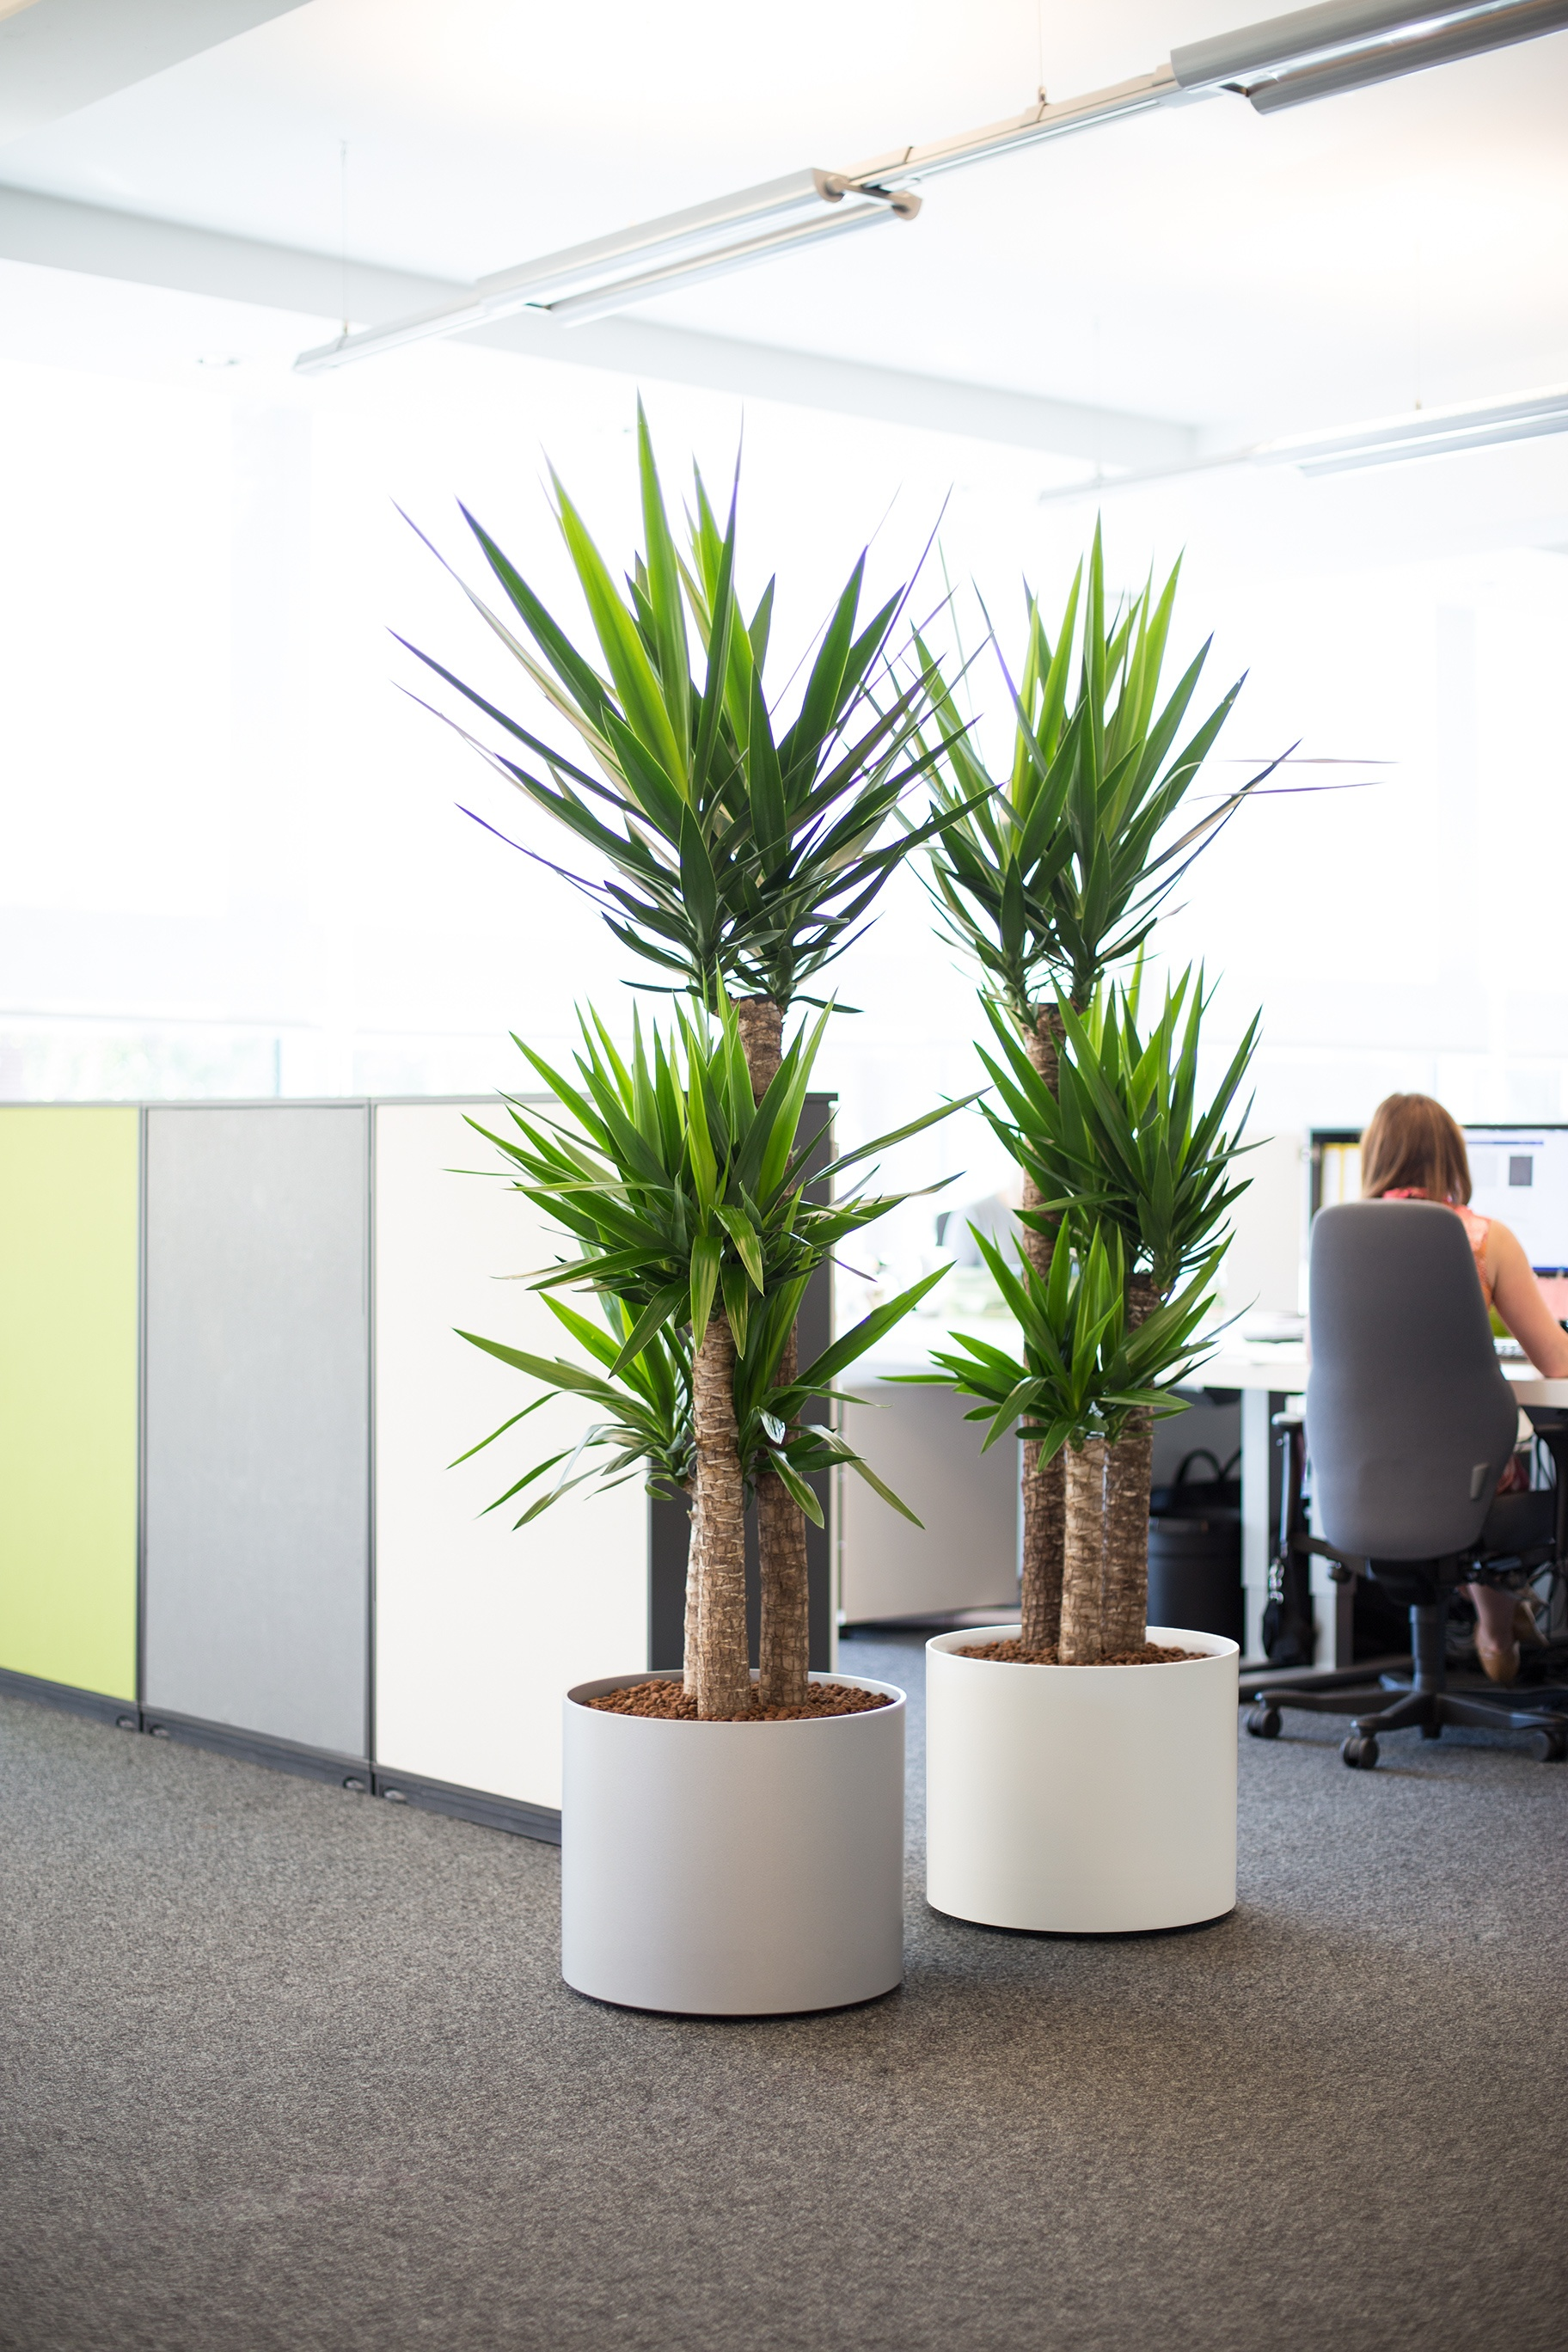 Image Of Interior Worke With 2 Potted Office Plants